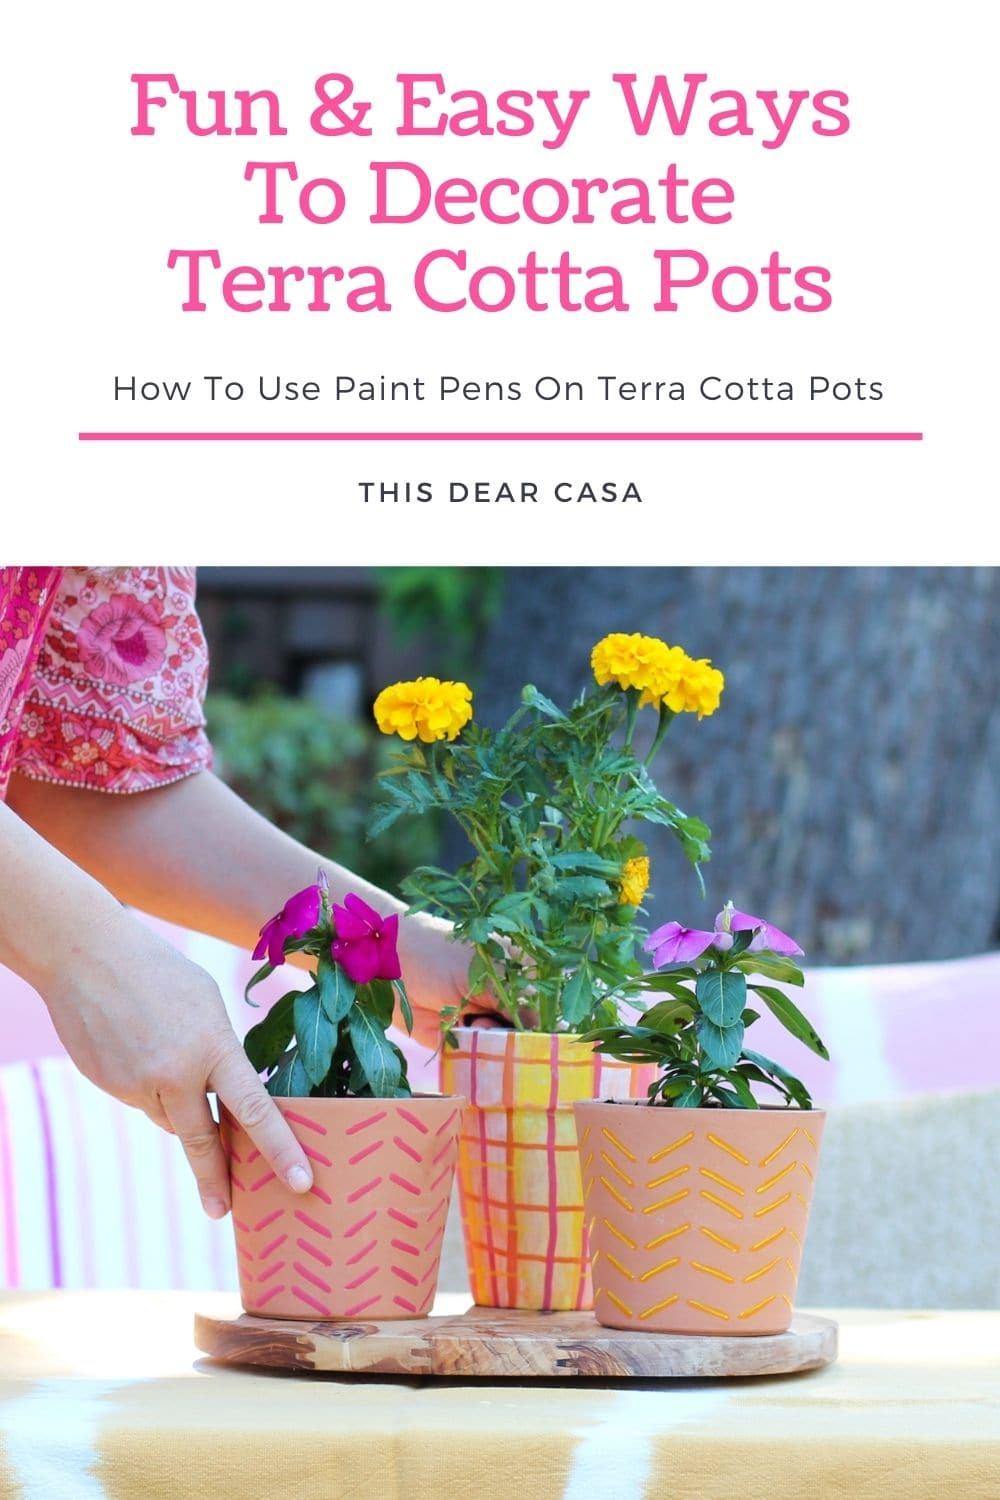 How To Use Paint Pens On Terra Cotta Pots